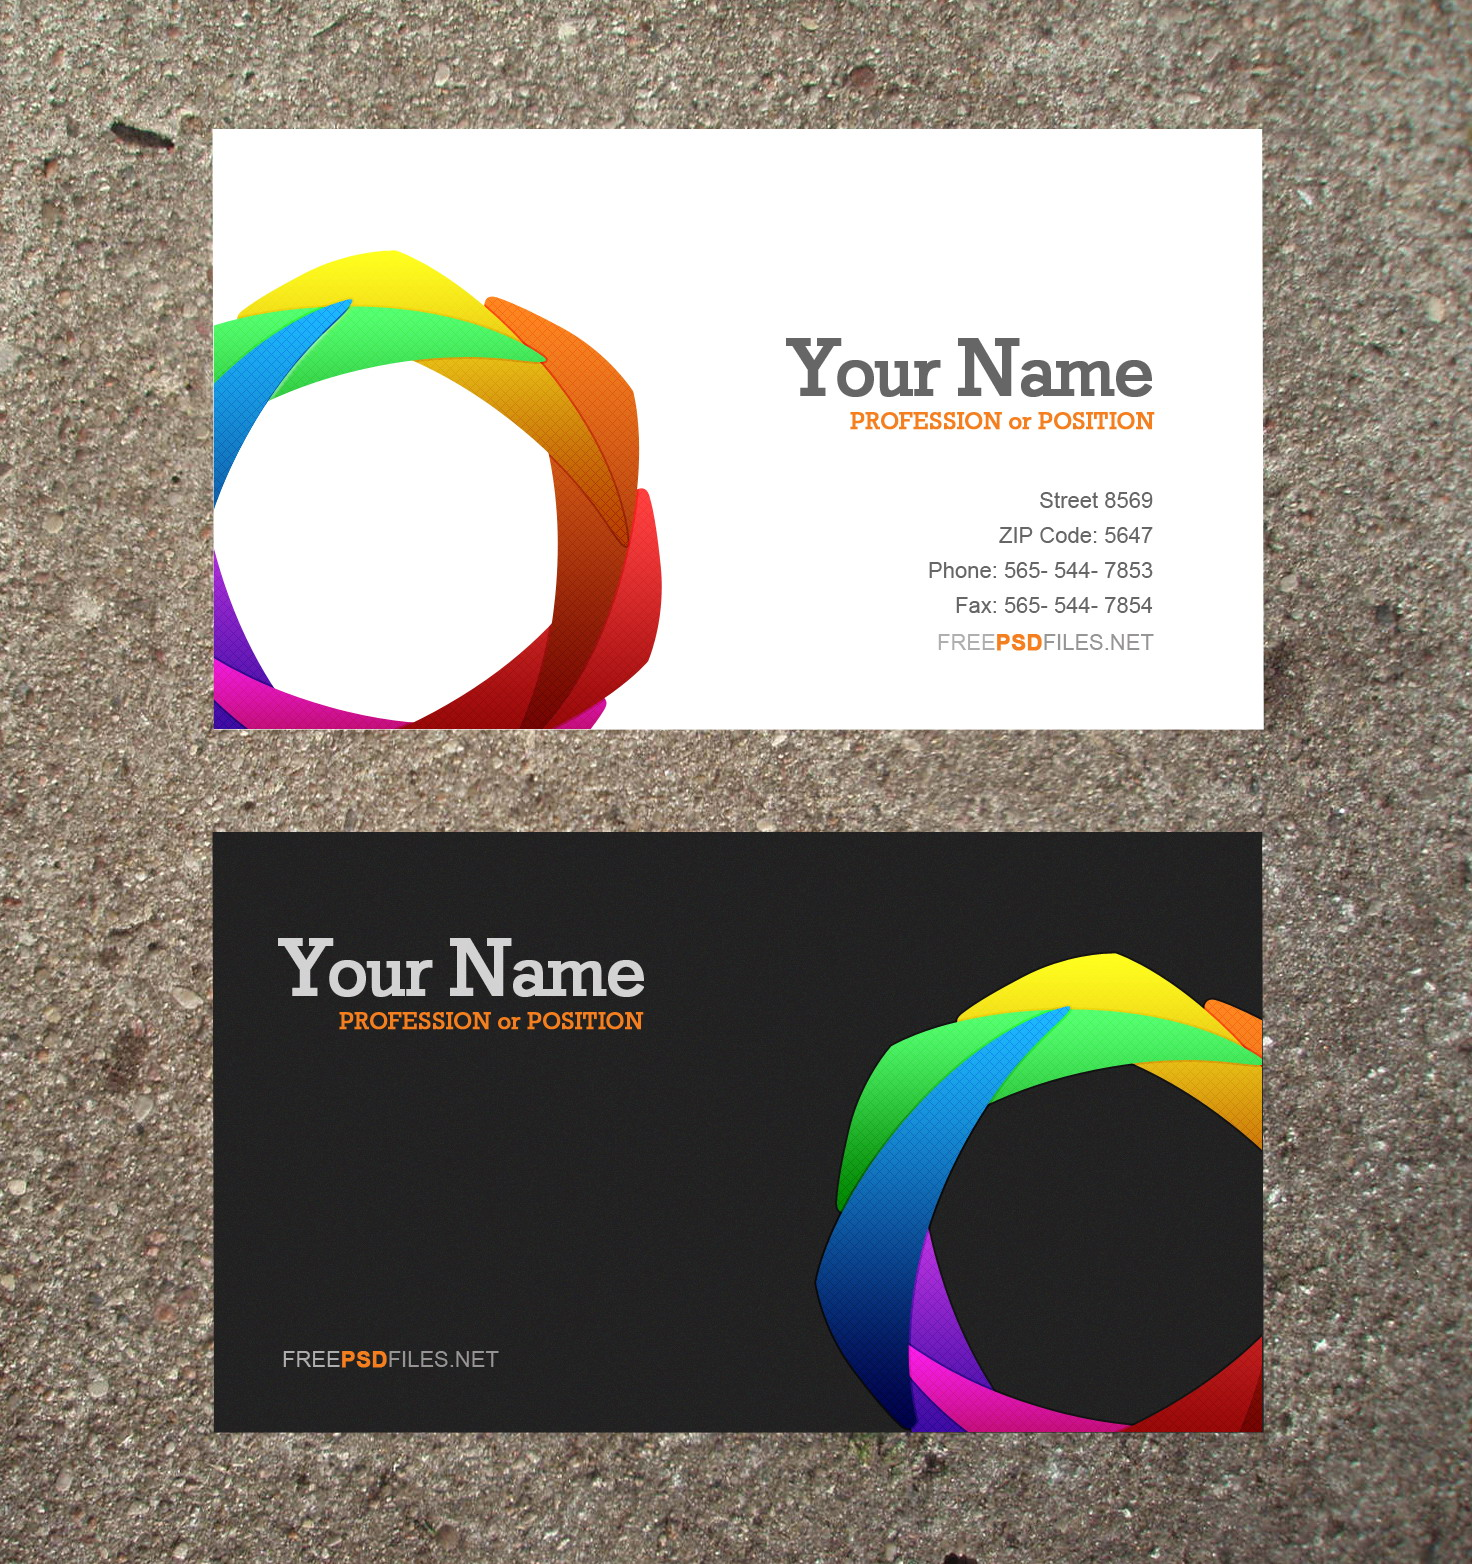 10 modern business card psd template free images free for Free business card design templates